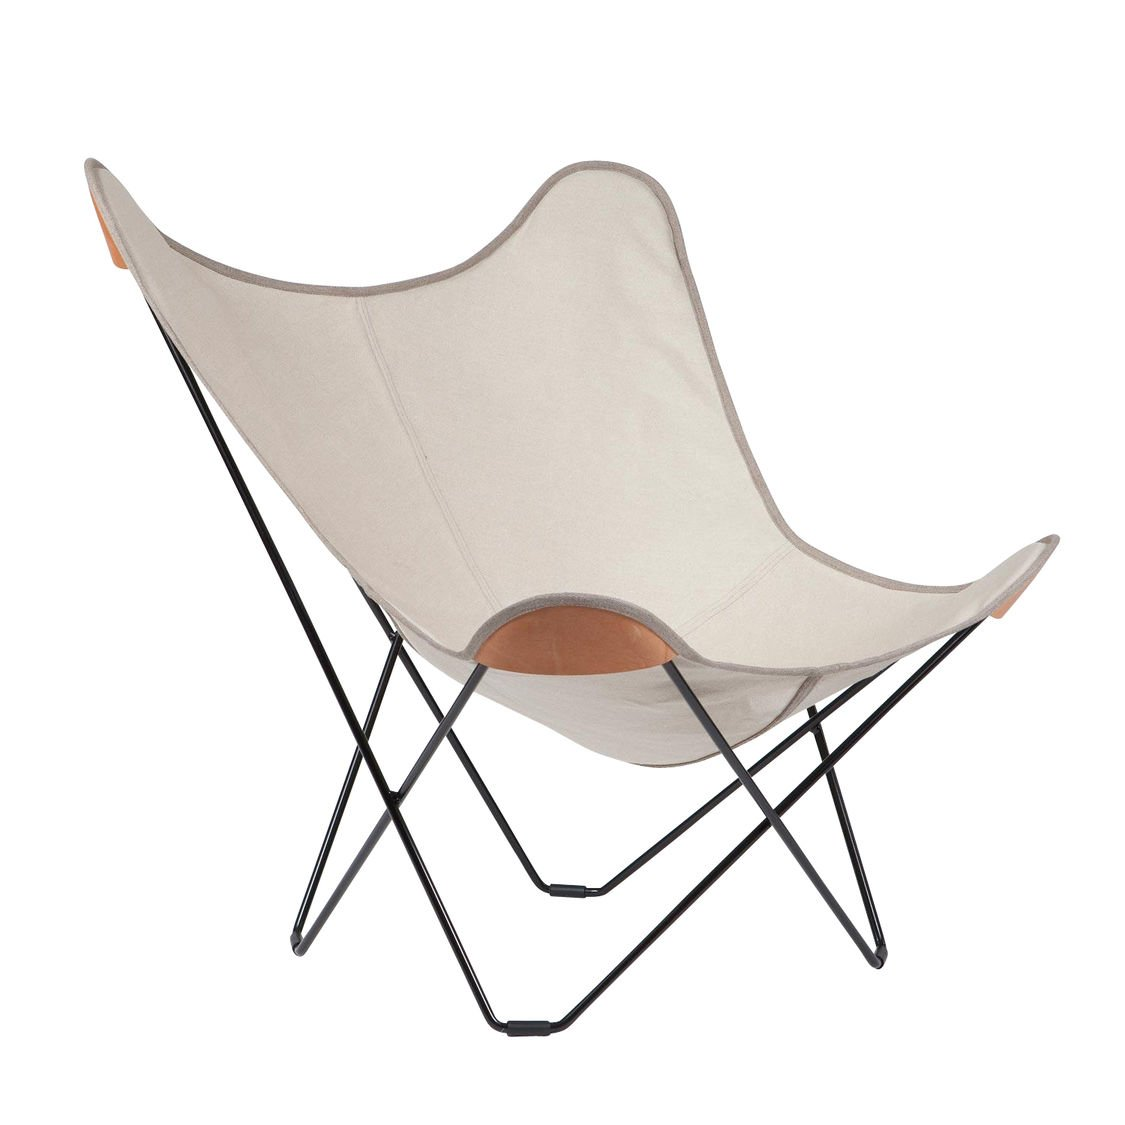 Canvas Mariposa Butterfly Chair Outdoor